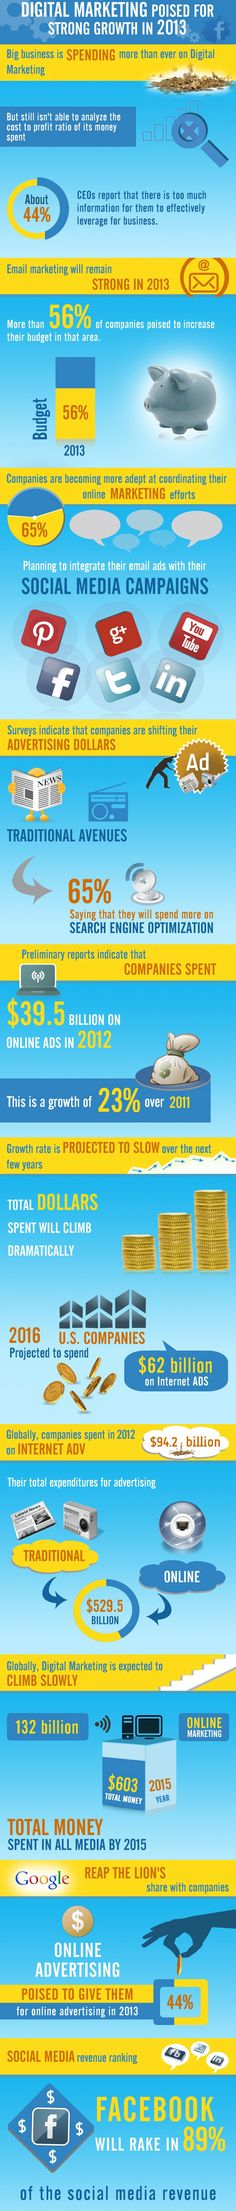 #Infographic - Growth of digital marketing in 2013